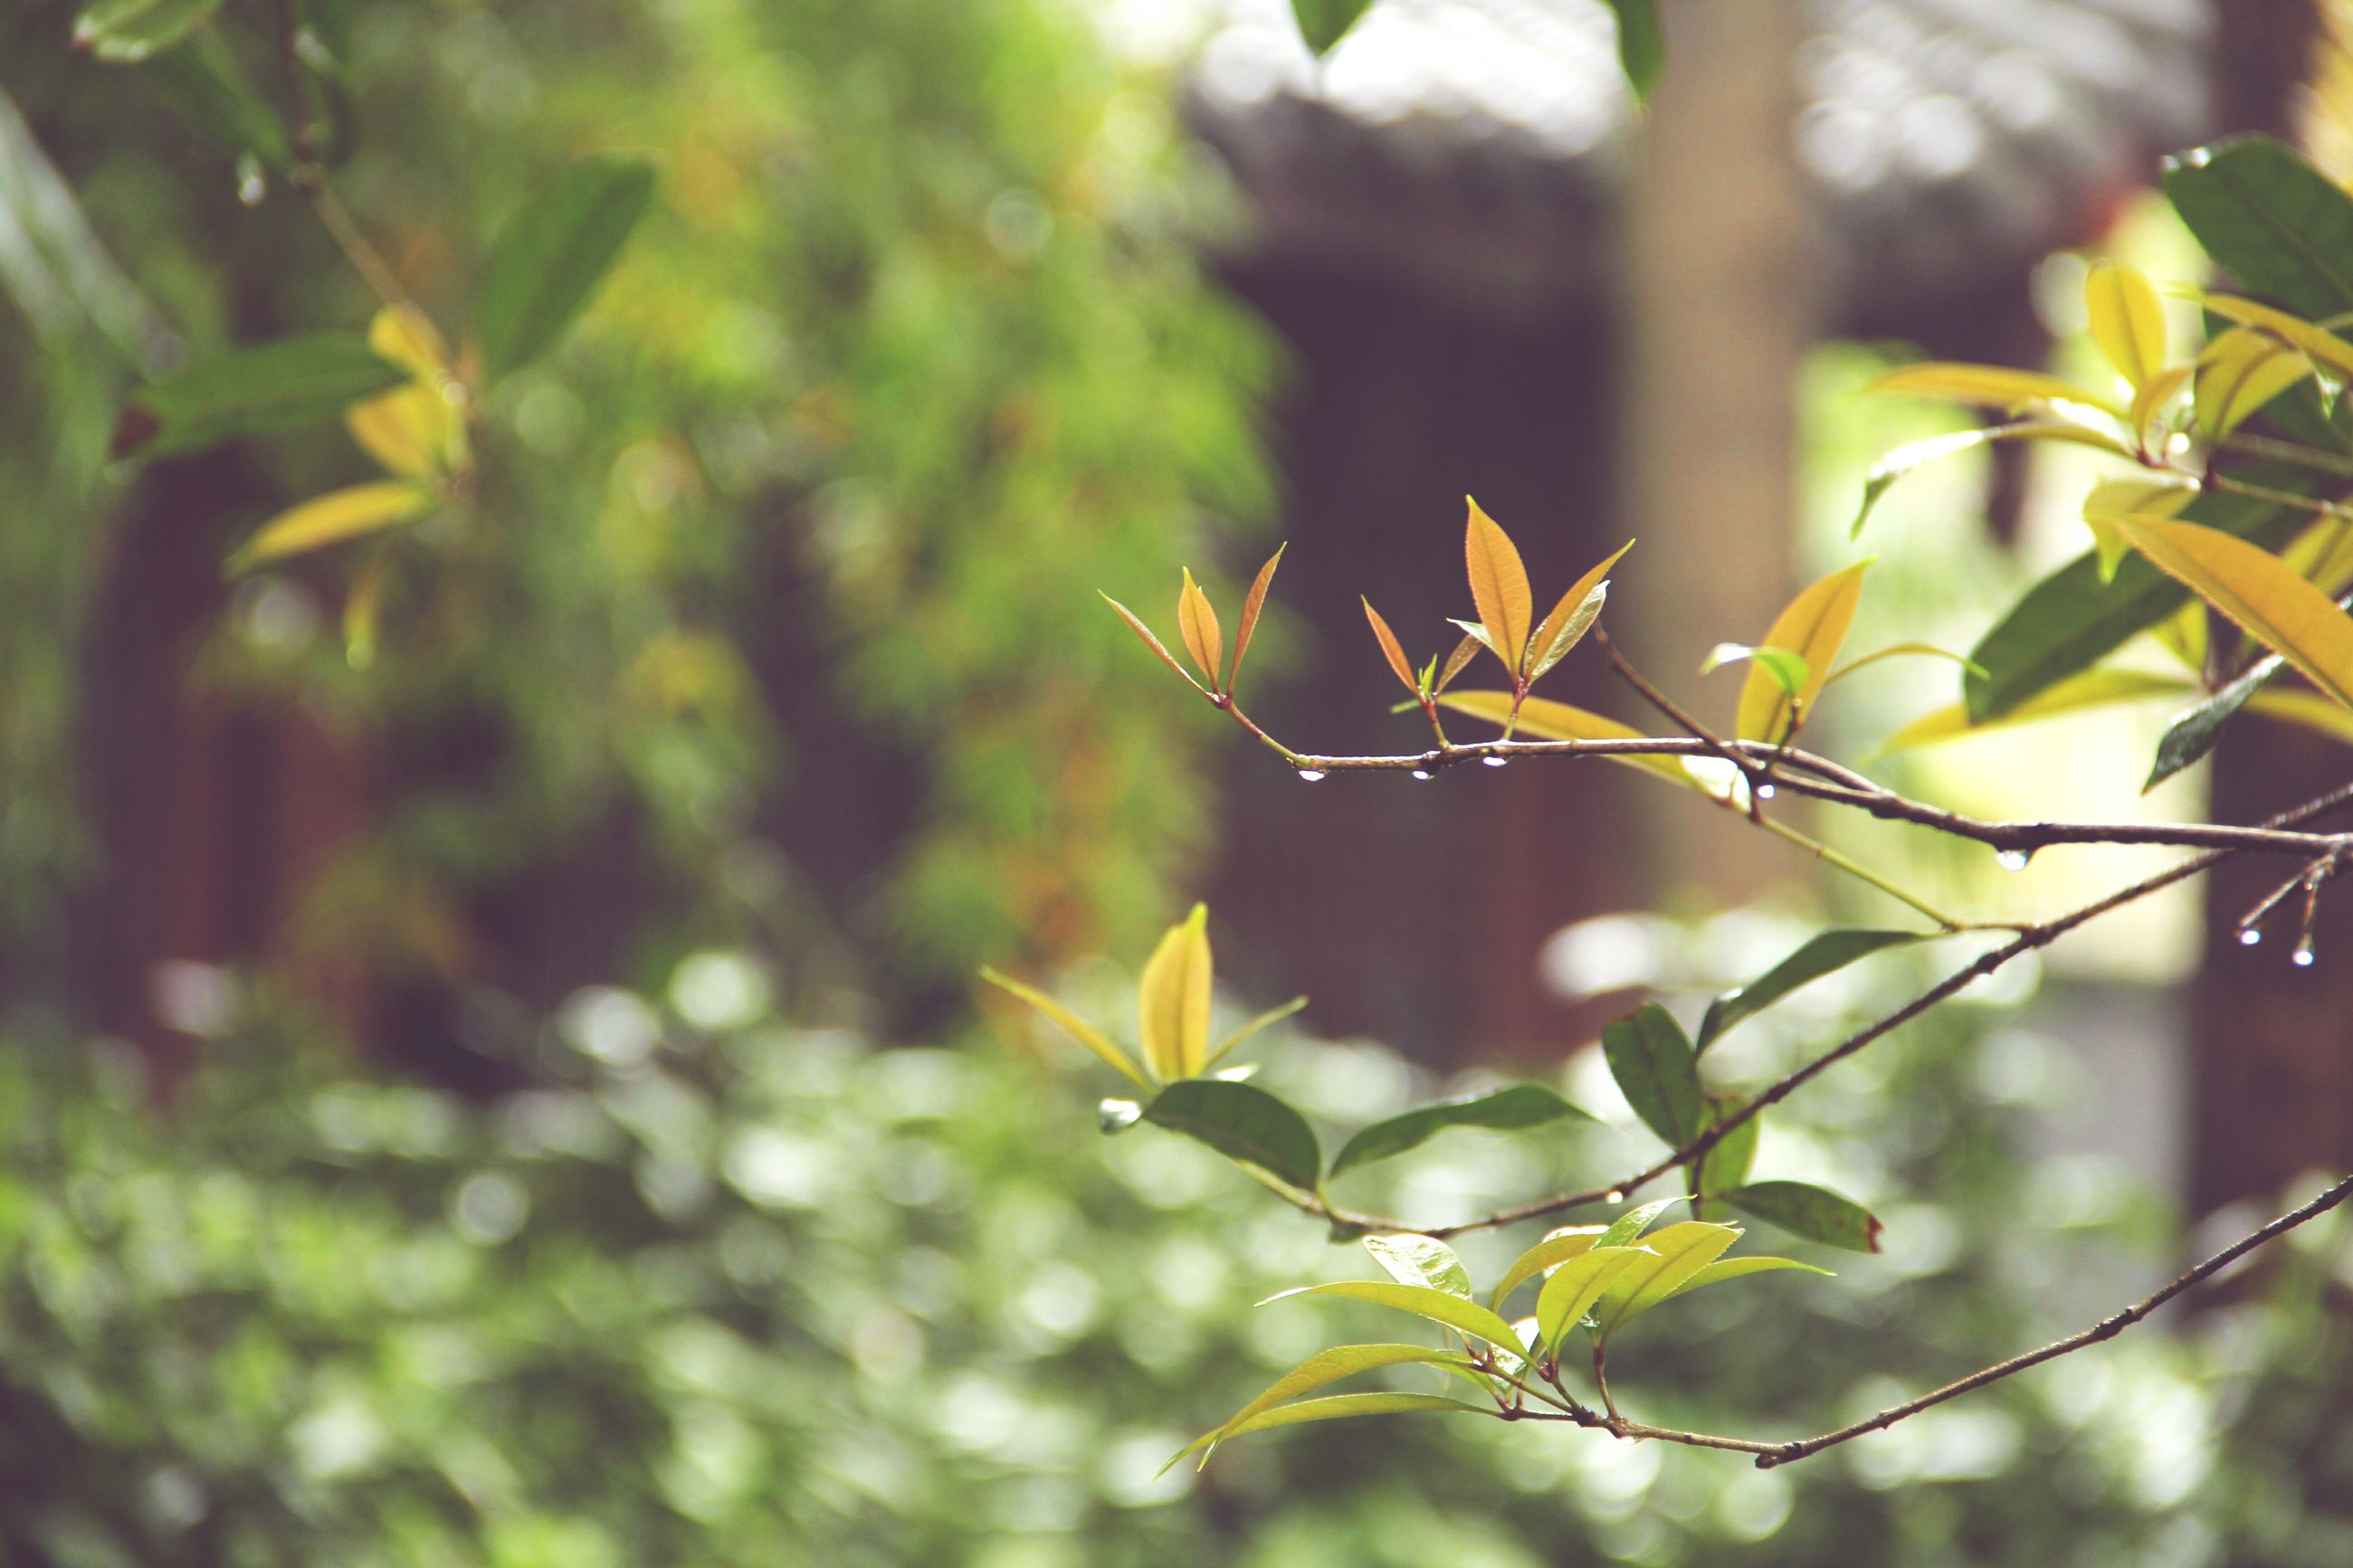 leaf, branch, focus on foreground, growth, close-up, plant, tree, nature, selective focus, green color, twig, outdoors, day, sunlight, beauty in nature, no people, leaves, stem, tranquility, growing